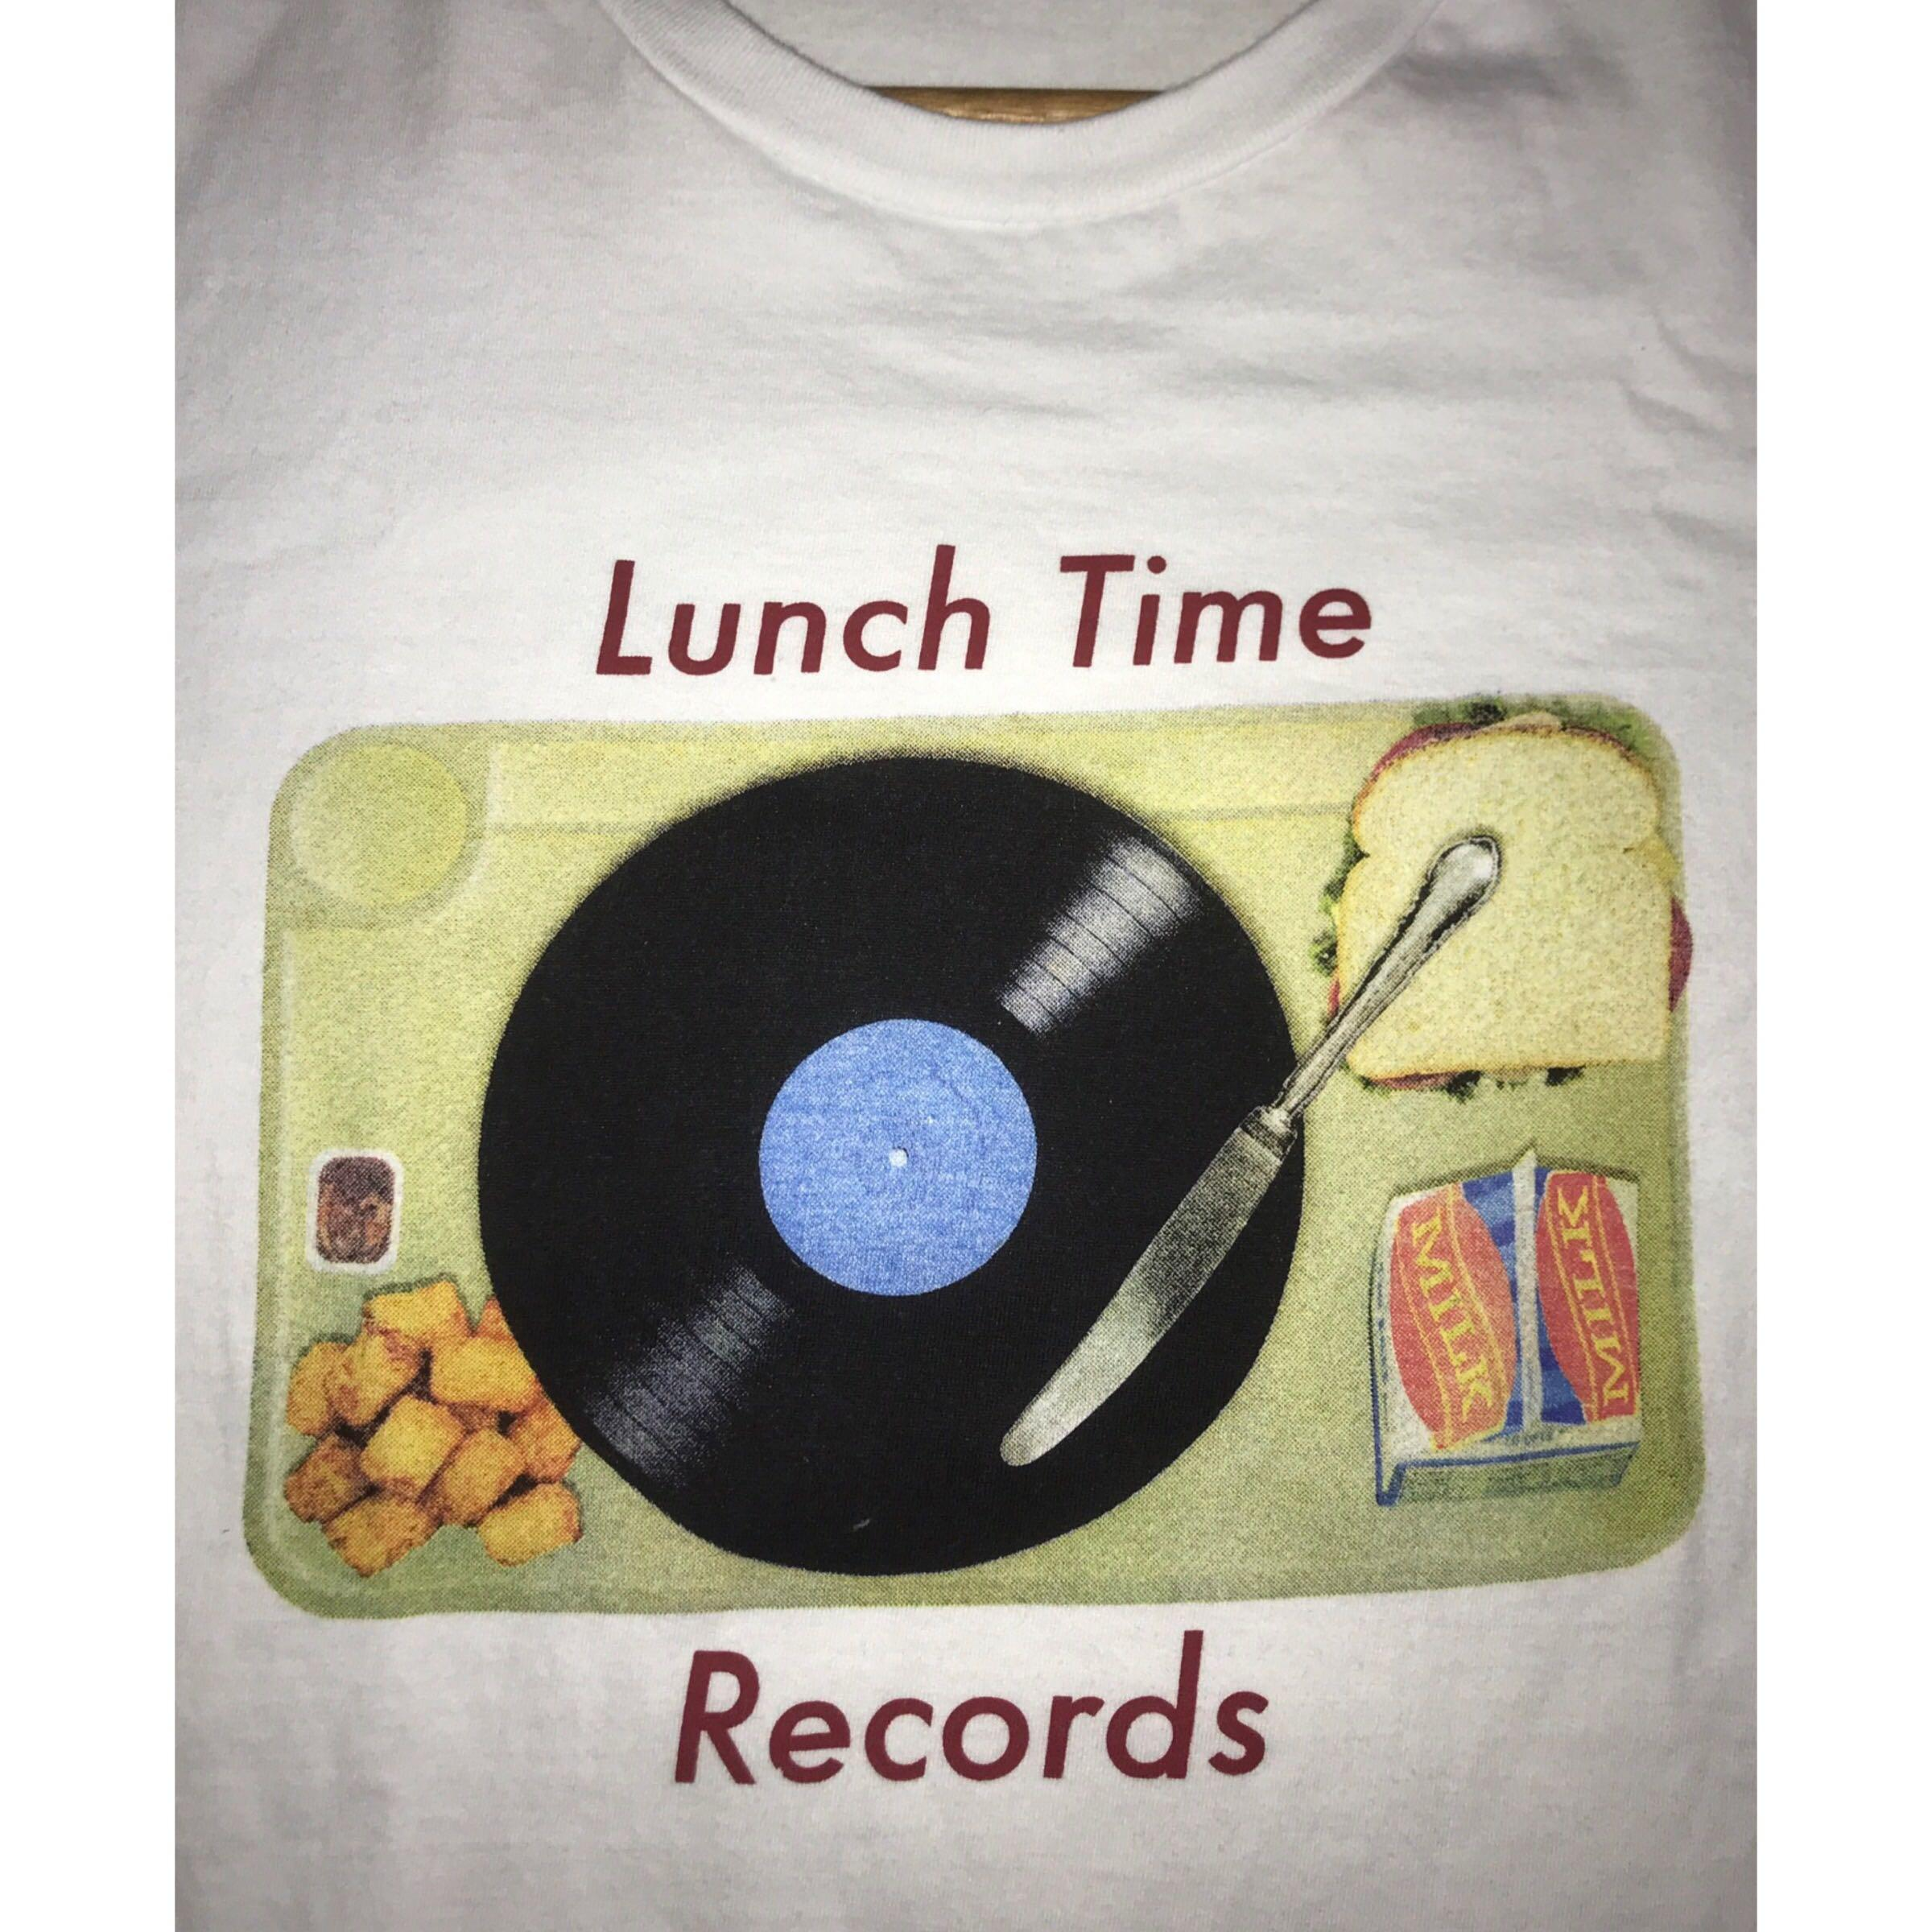 """White Graphic Tee / T-shirt - """"Lunch Time Records"""""""